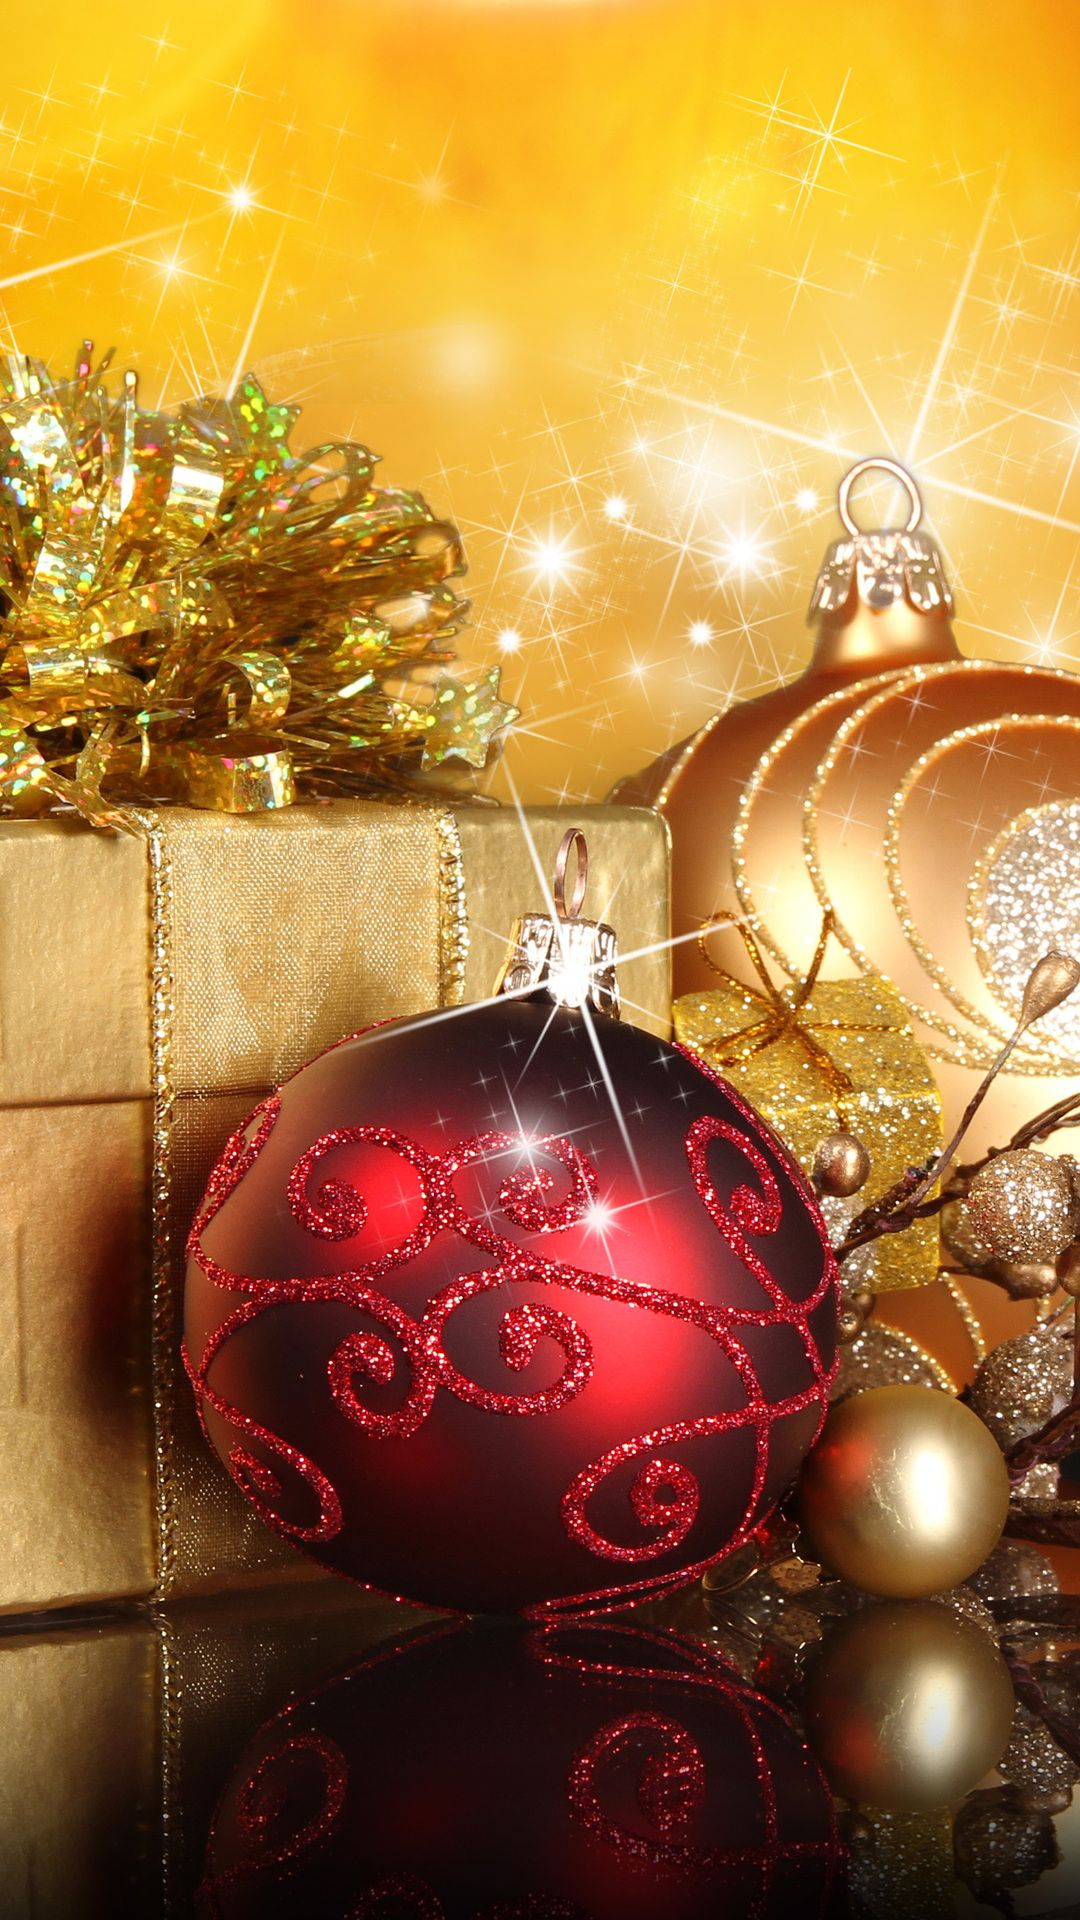 New Year Wallpaper App Christmas Trees Gifts The Celebration Background Desktop Backgrounds Wallpapers